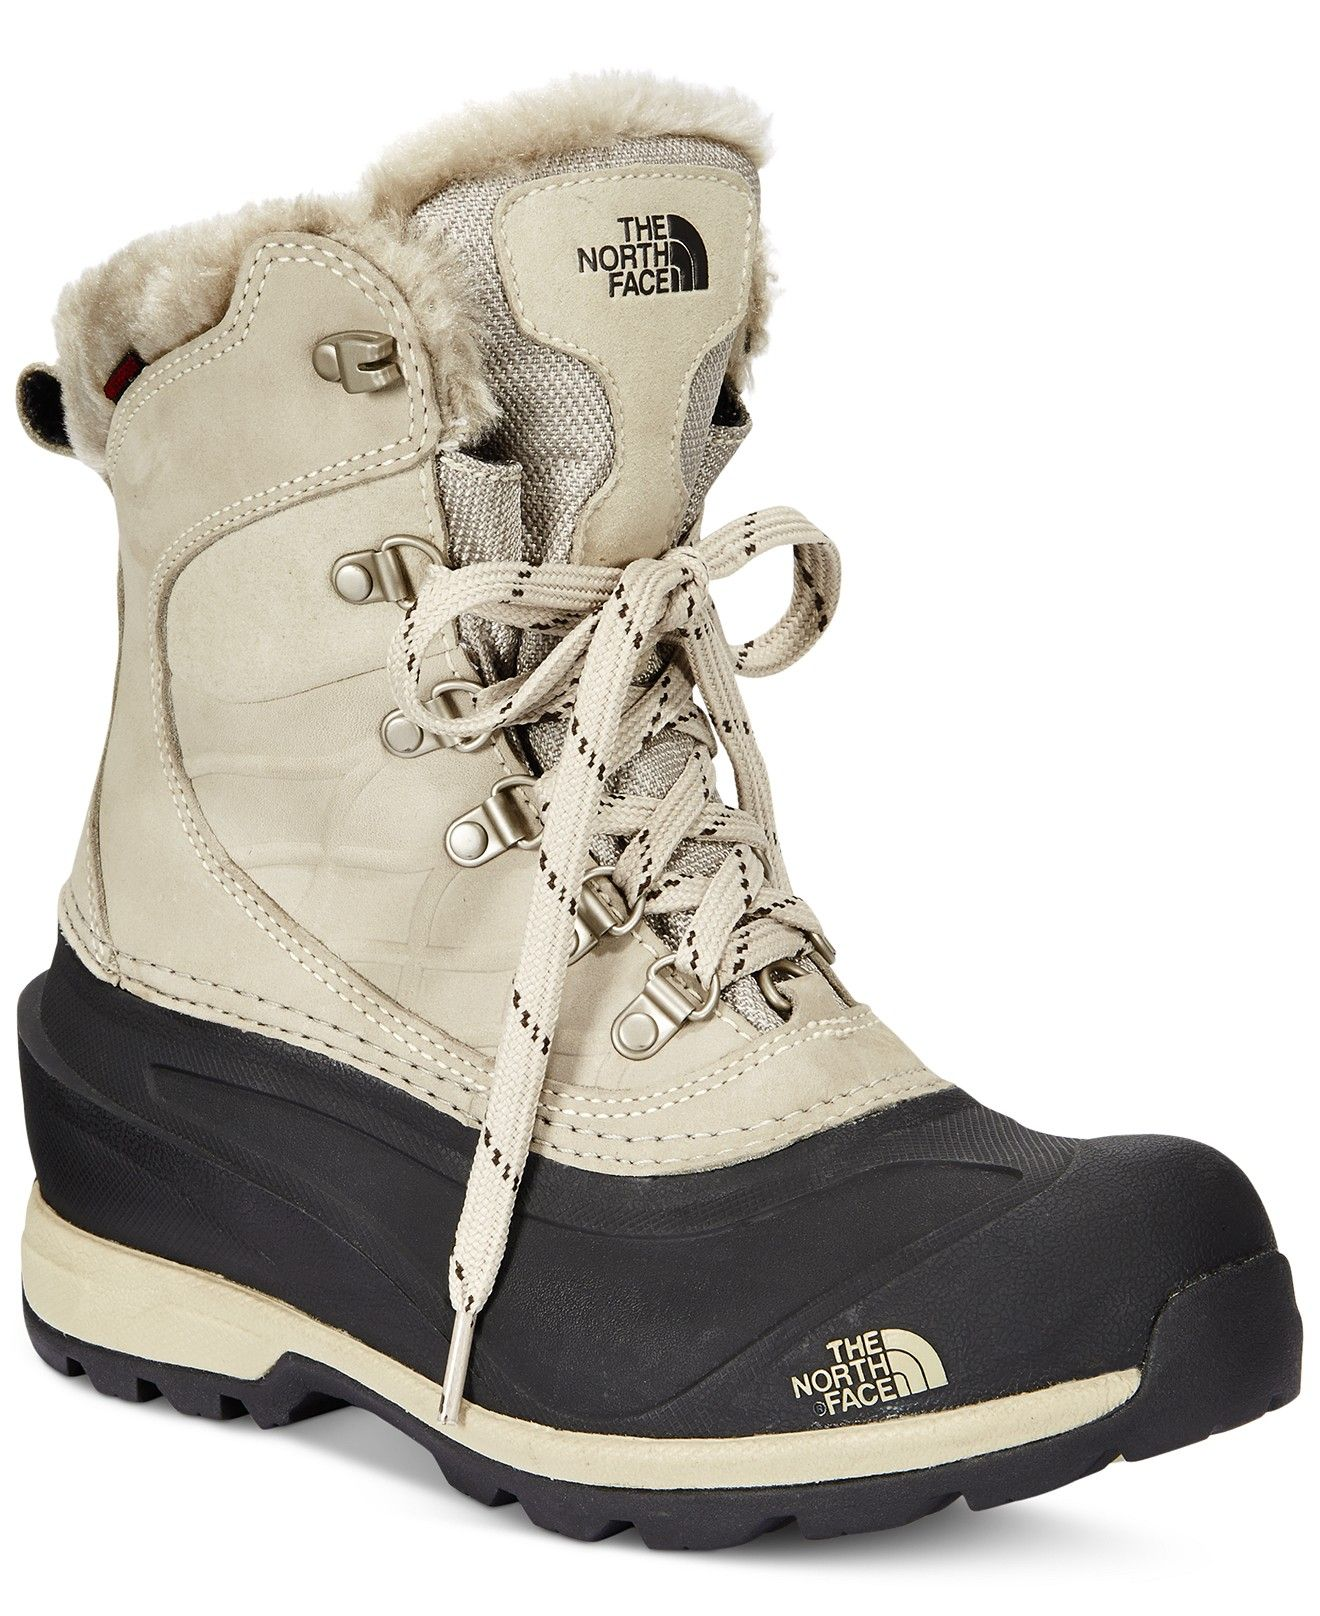 73d9e866b The North Face Women's Chilkat 400 Cold Weather Hiker Booties ...